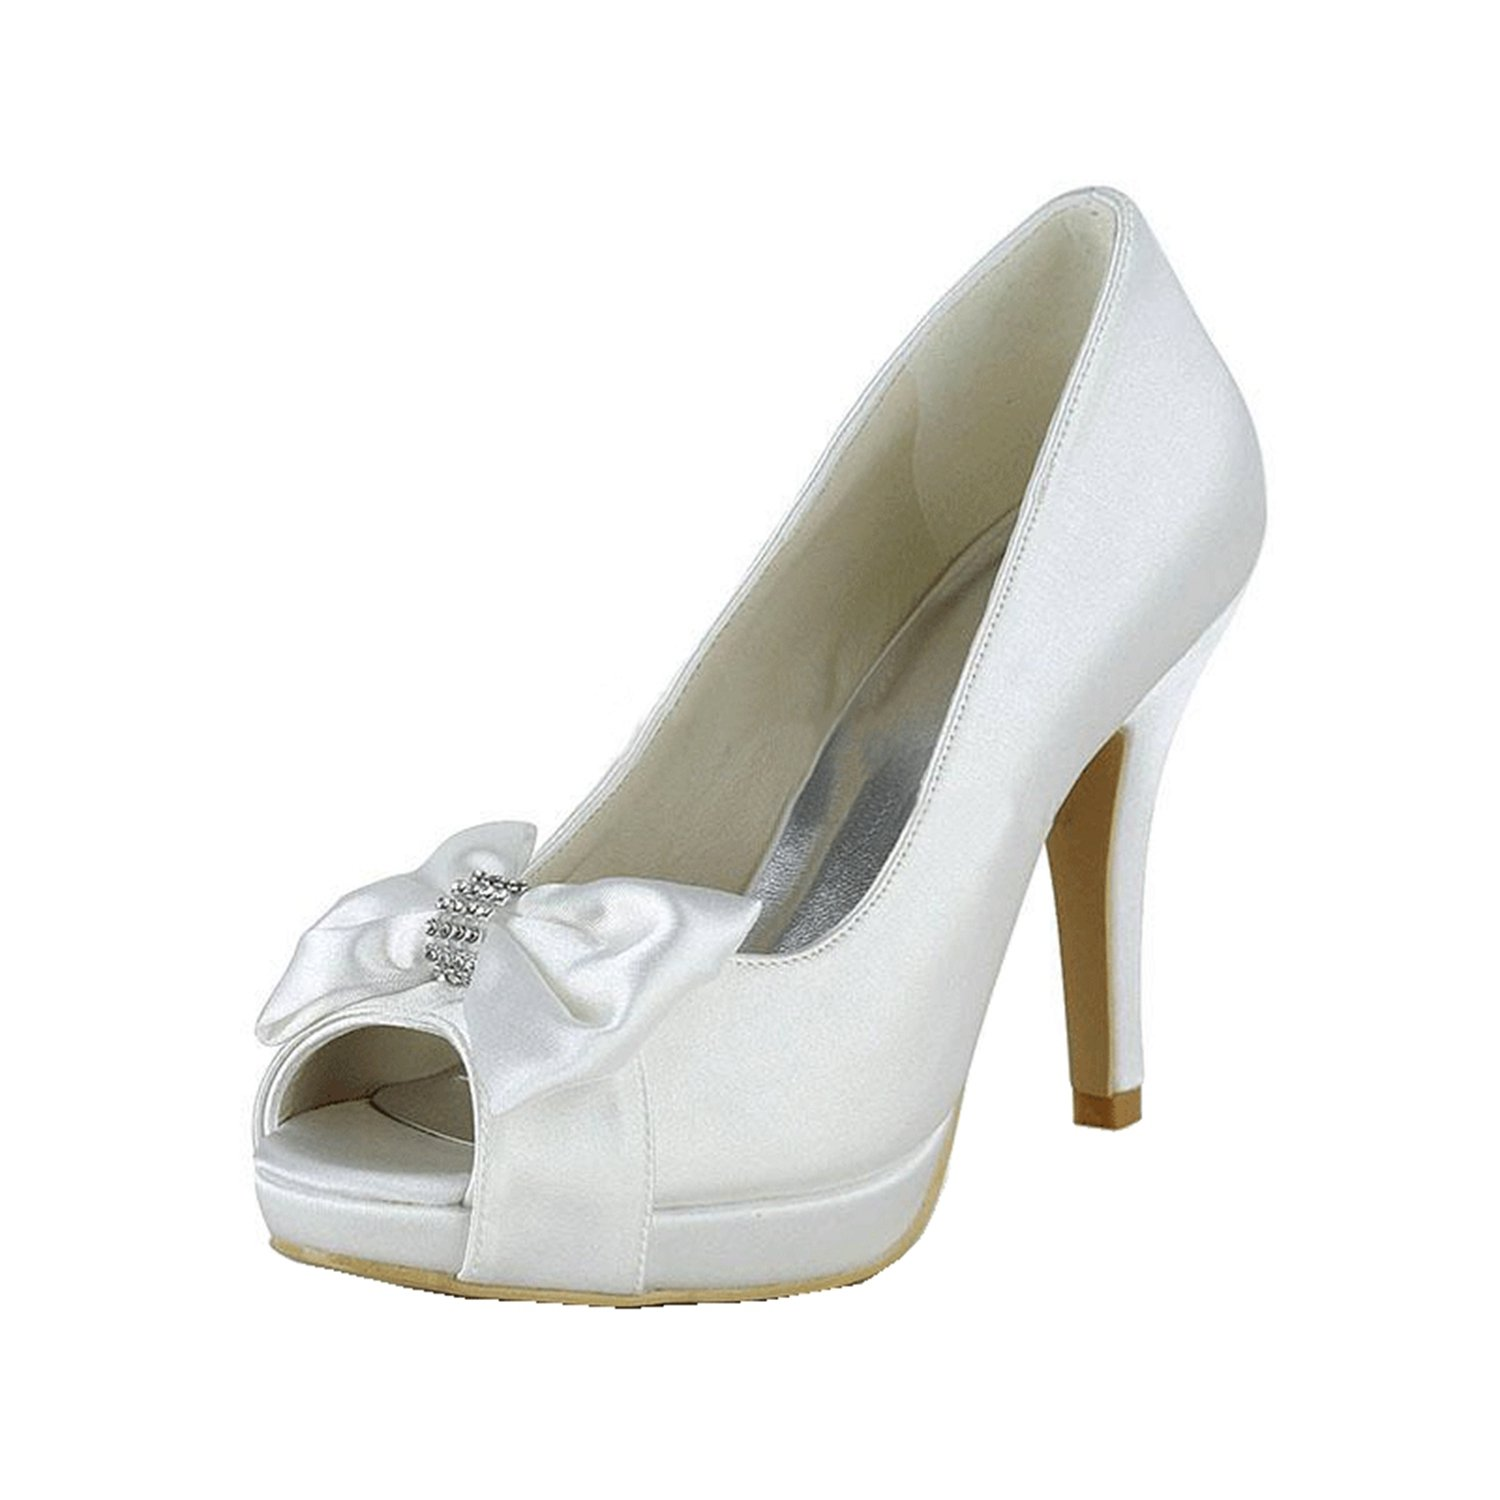 Minitoo 13106 , Sandales pour femme pour Minitoo Ivory-10cm Heel 7c6ffe0 - therethere.space